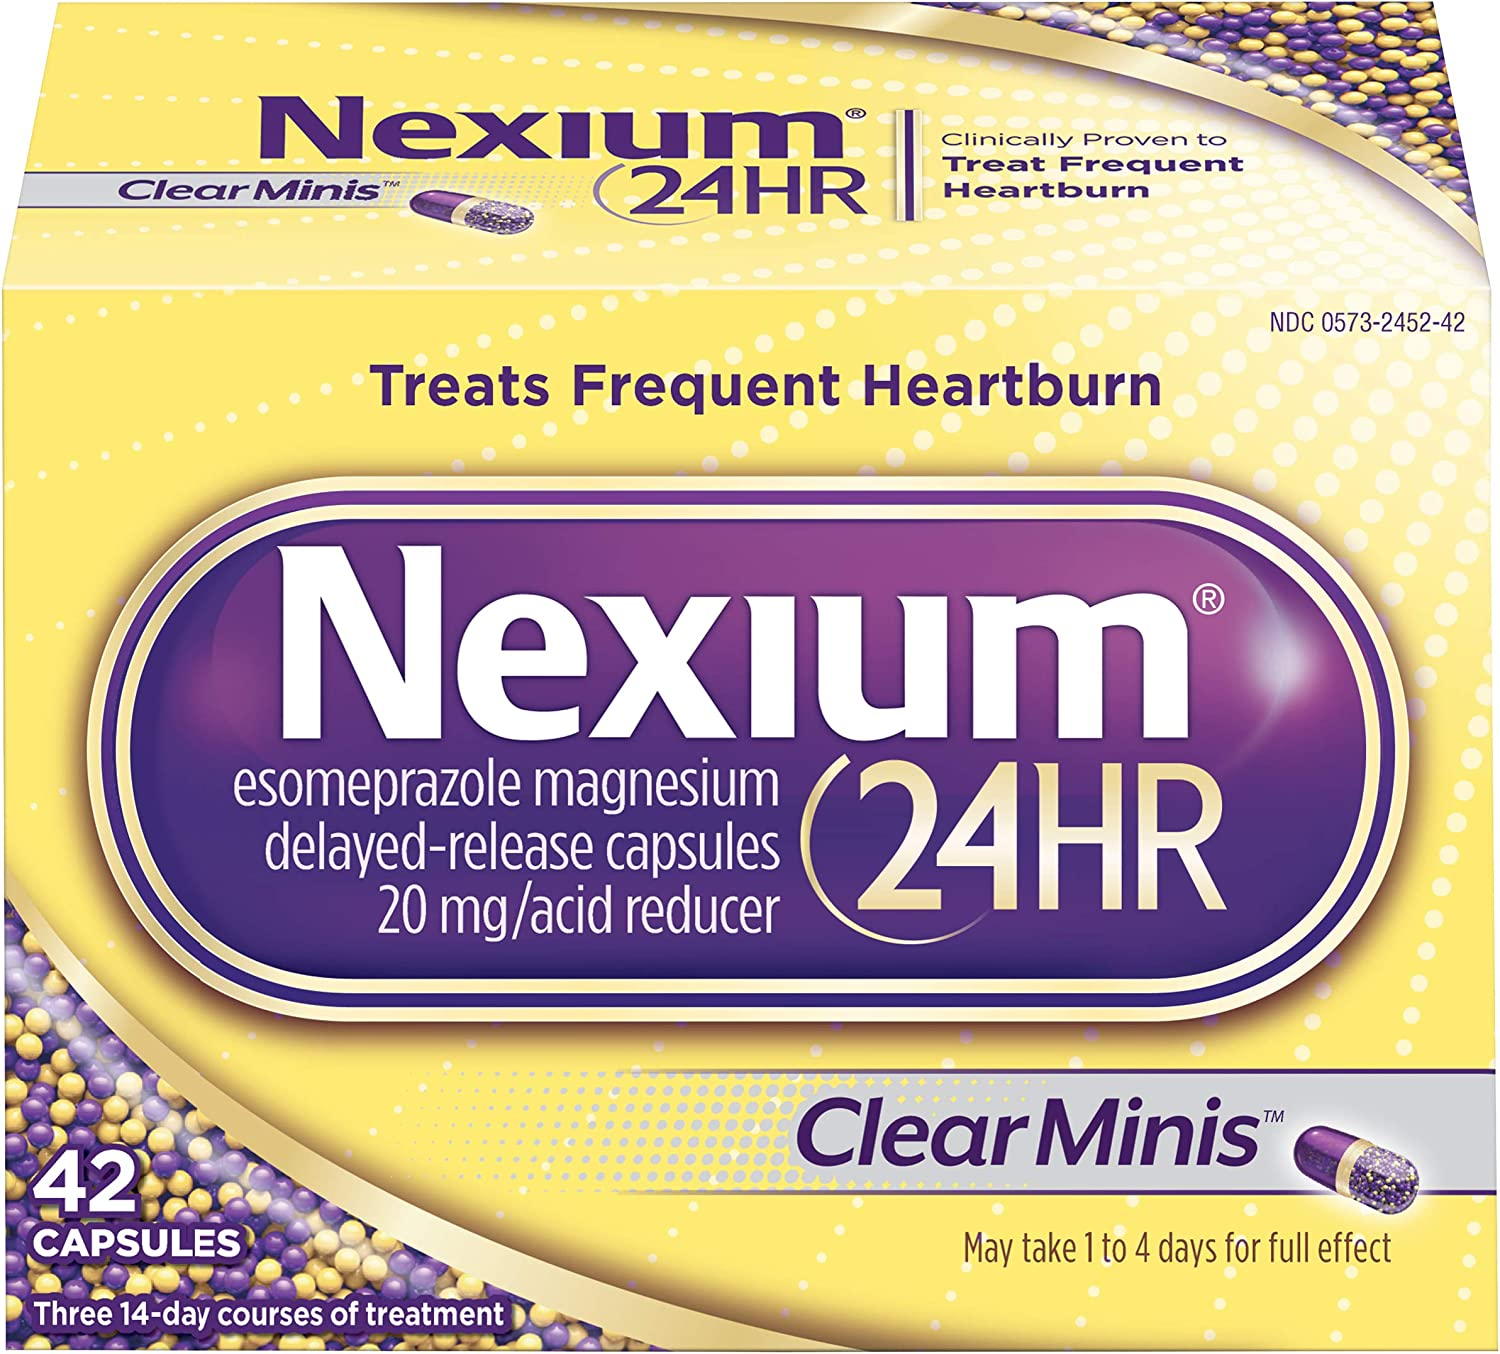 Nexium 24HR (42 Count, ClearMinis) All-Day, All-Night Protection from Frequent Heartburn Medicine with Esomeprazole Magnesium 20mg Acid Reducer, 38% Smaller Capsule: Health & Personal Care